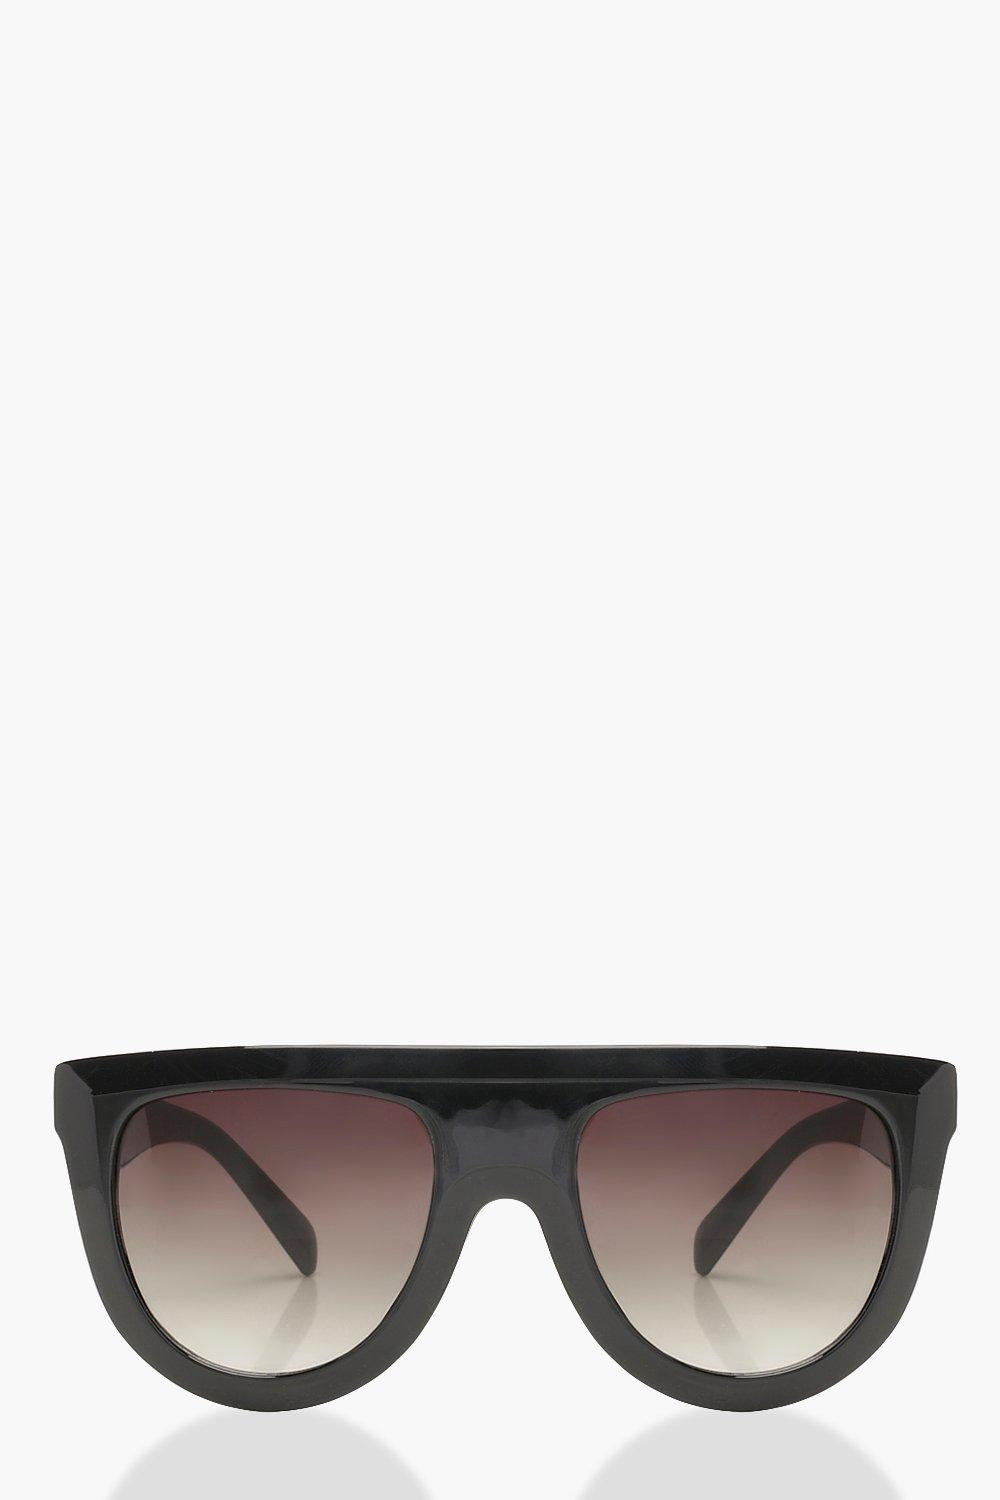 c8d20ebf26 Oversized Flat Top Sunglasses. Hover to zoom